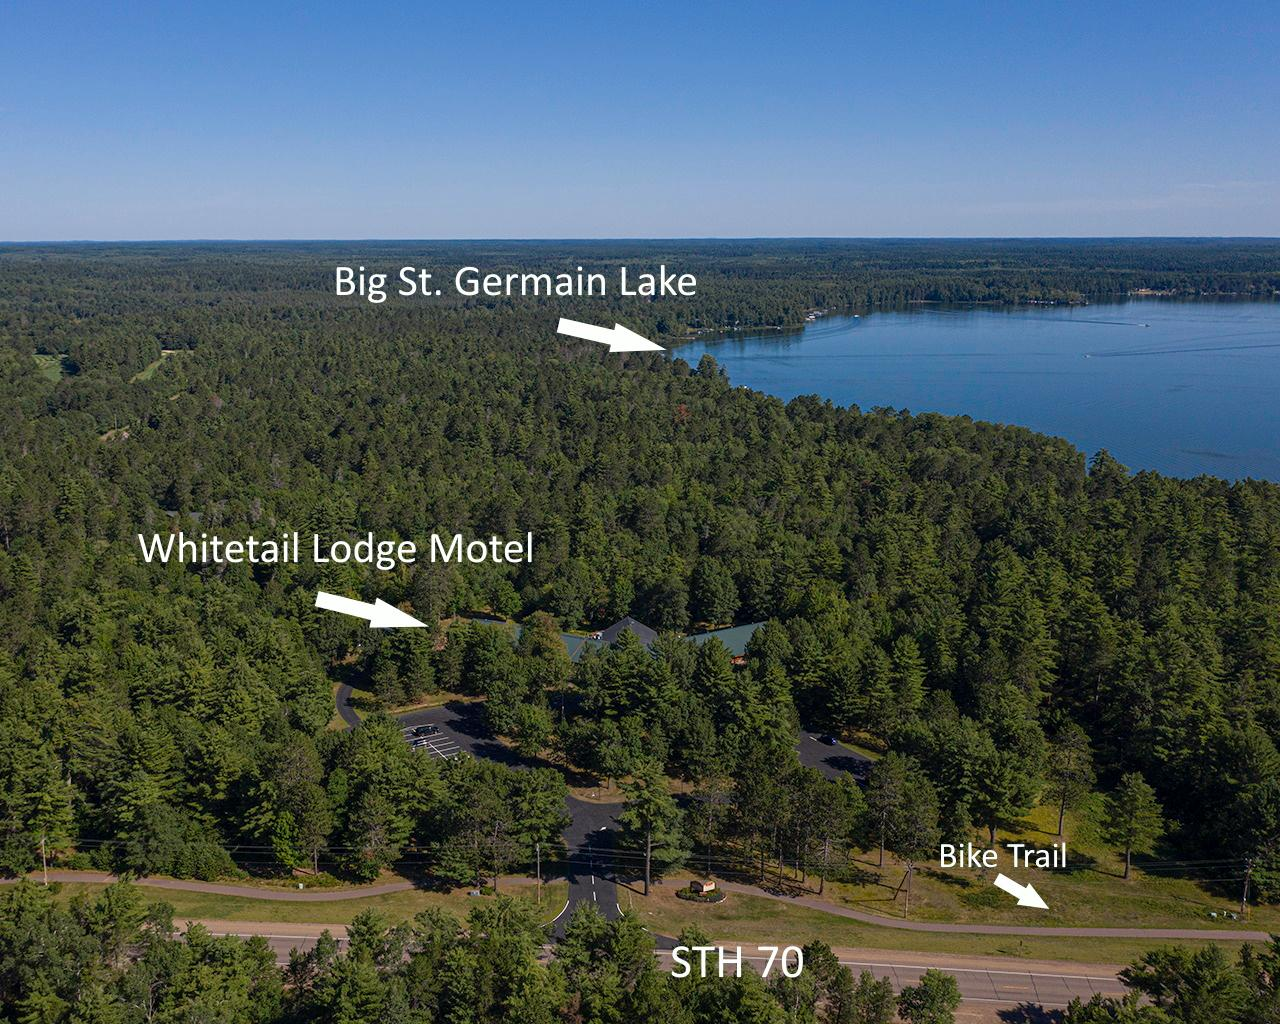 WHITETAIL LODGE MOTEL-Ideal successful business for the family that desires to live & work in the beautiful Northwoods of Wisconsin! This newly stained cedar lodge w/ metal roof is located on the outskirts of St Germain & near many quality lakes on 18+ wooded acres. 30-rooms, w/attached 3-BR, 2-BA residence, heated indoor pool, a jacuzzi hot tub & an exercise room. The lobby has 2 sitting areas & a massive stone gas FP. Direct access to the hiking/biking/snowmobile trail system & walking distance to the St Germain Golf Club, as well as superb nearby dining choices. The lodge is being sold turnkey, (incl a newer John Deere tractor w/cab & snowblower & a 2020 Ford F250 pickup w/plow system) & offers high speed Internet. Large, freshly sealed blacktopped parking lot, 3-car heated garage w/overhead storage, spacious yard for outside activities & varying room layouts, some w/FP's. Room for expansion! This is a manageable, profitable investment awaiting it's new owners! Whitetaillodge.com